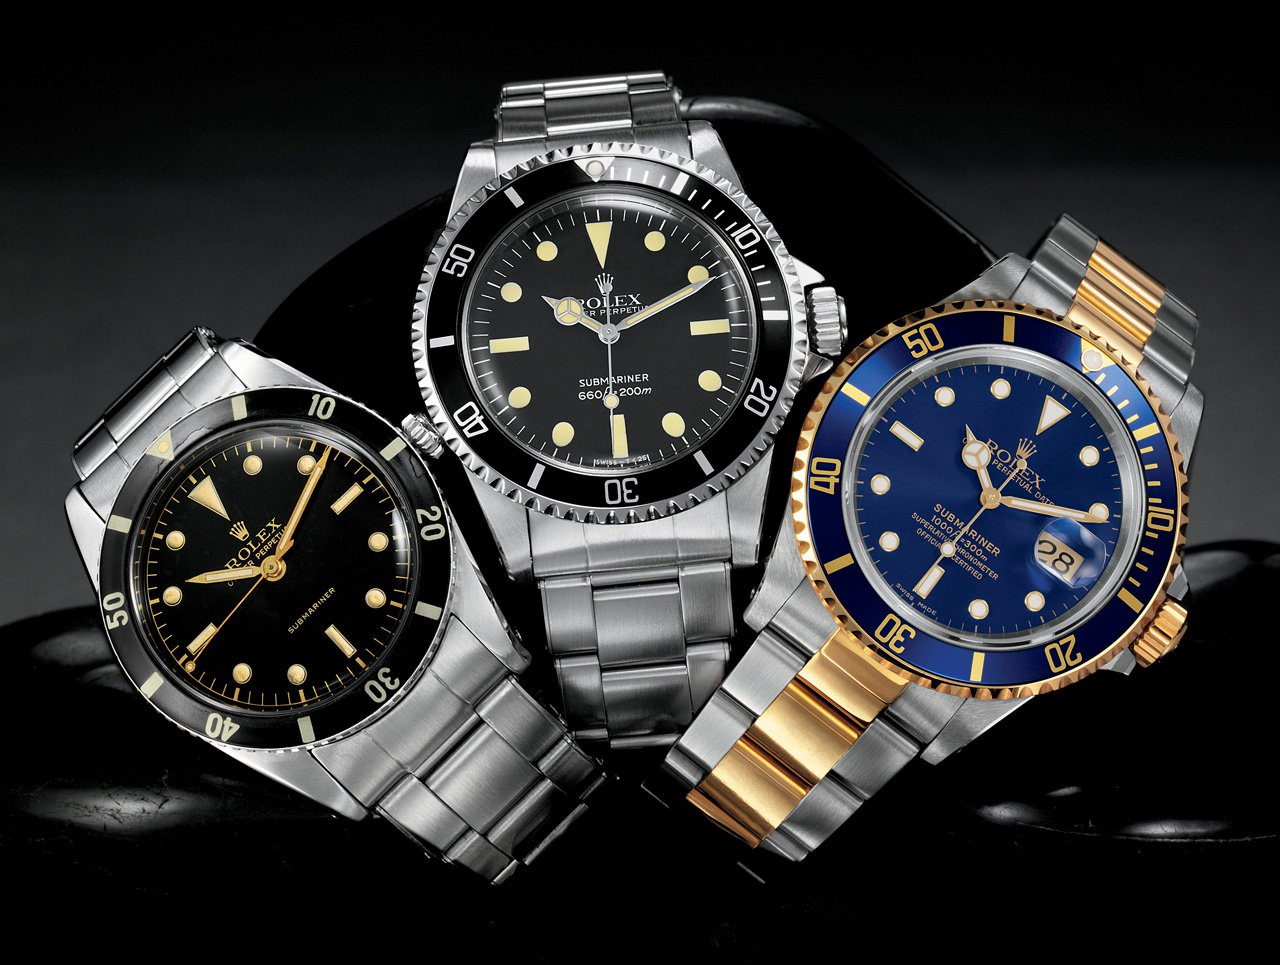 Free download Download Rolex Watch Wallpapers For Mac [1280x965 ...